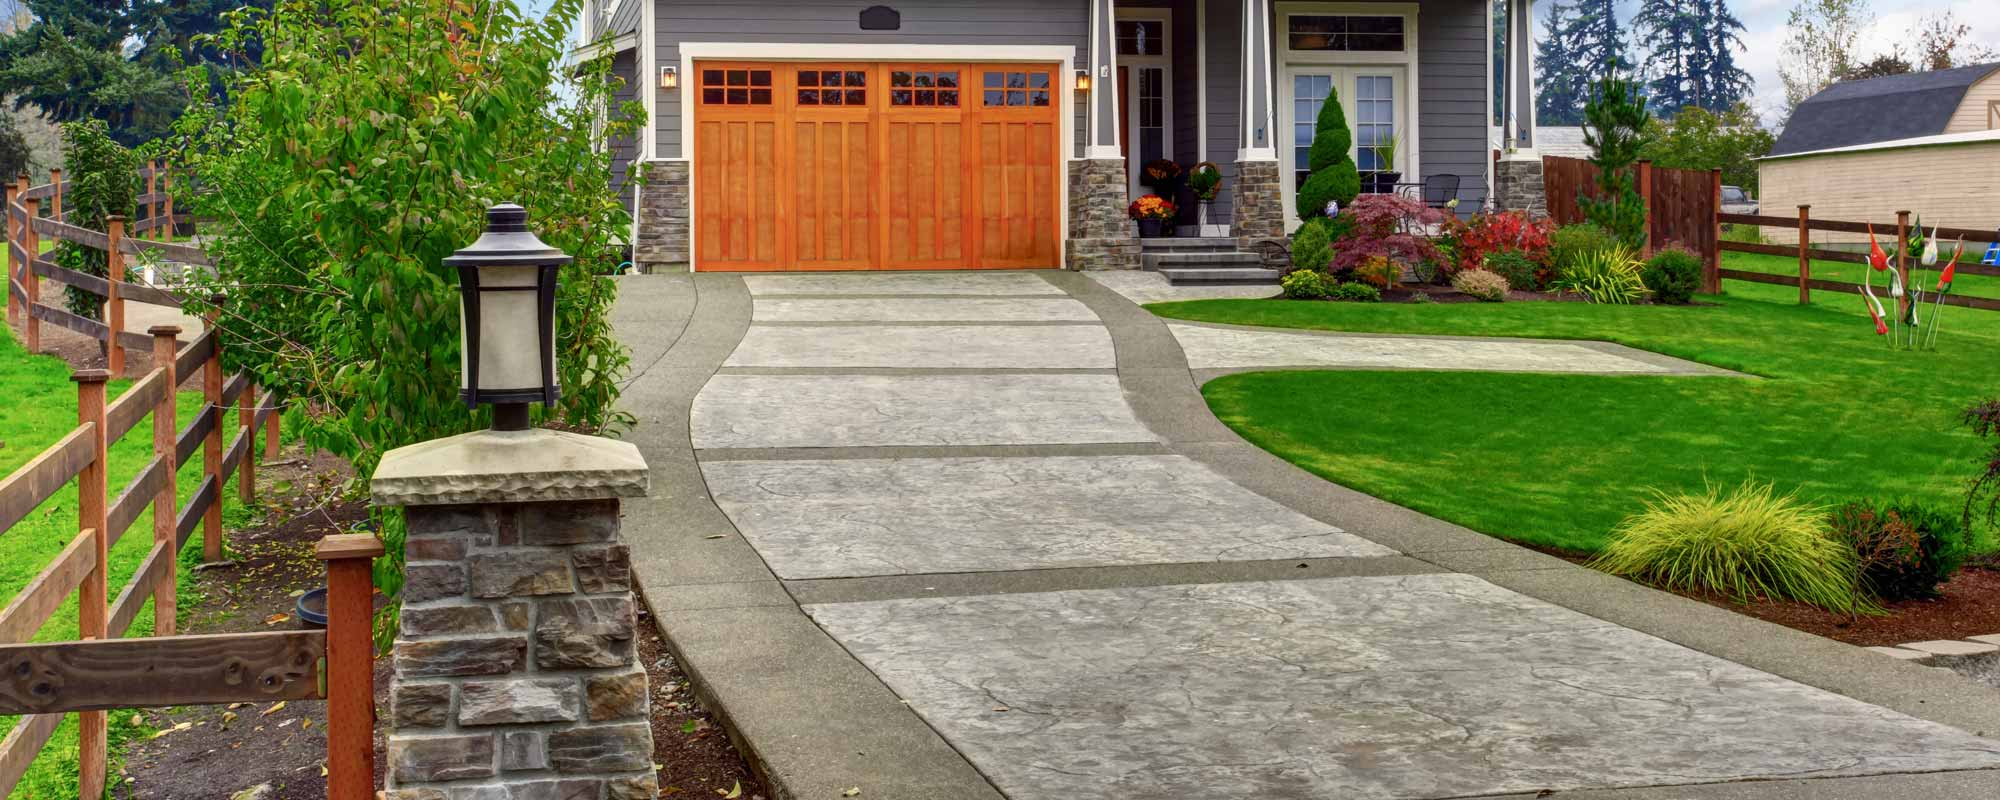 installing driveways chicago